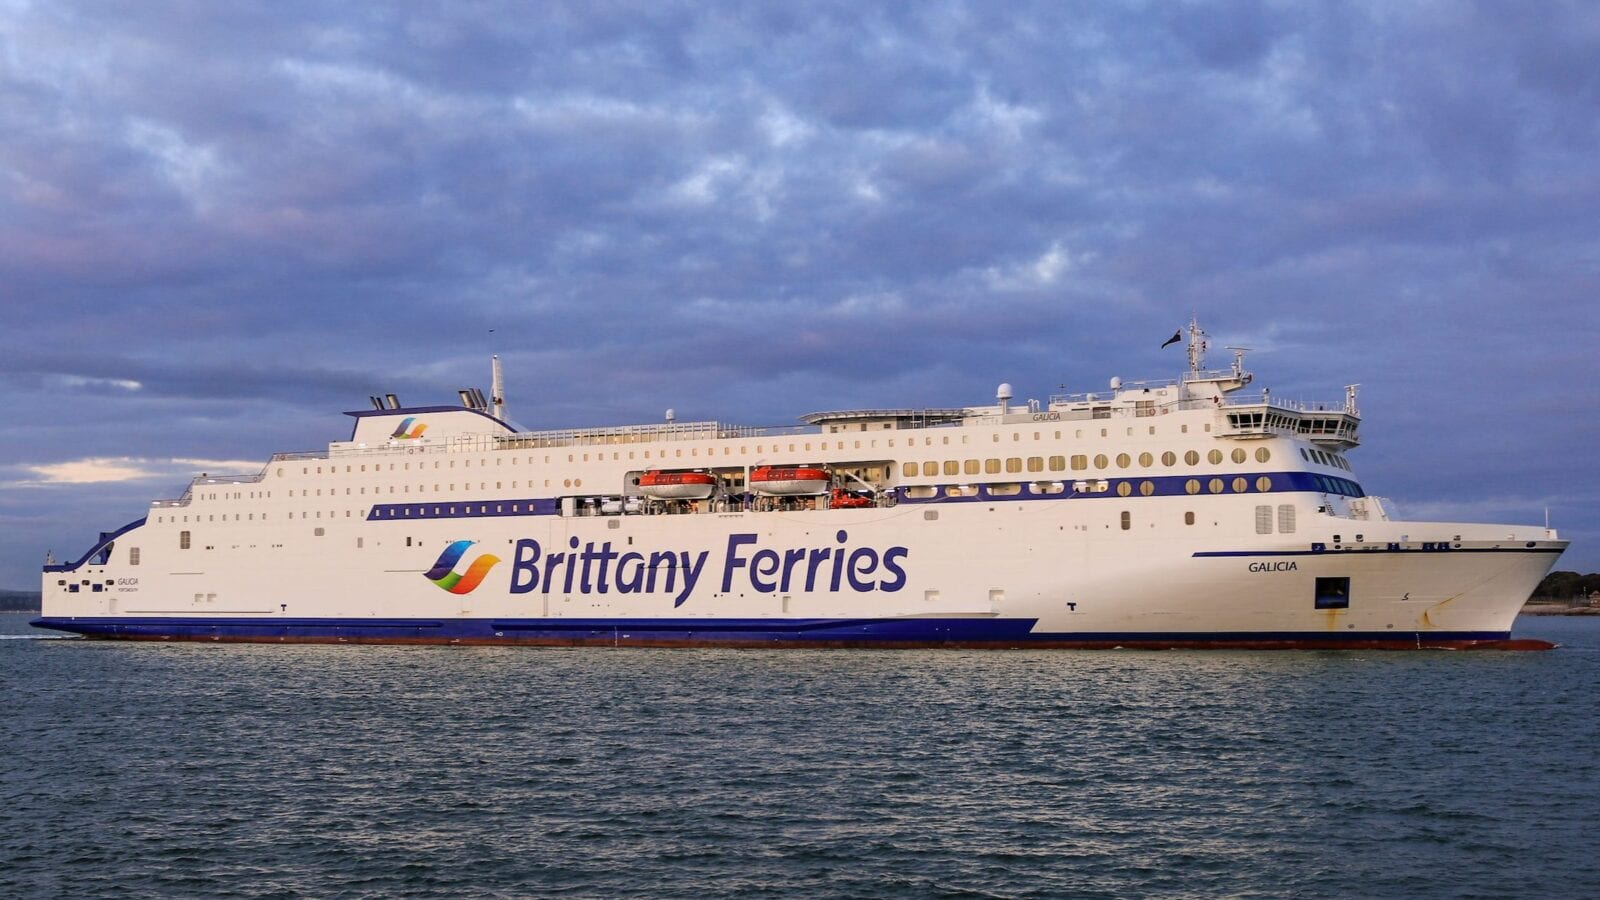 Brittany Ferries to Spain from the UK